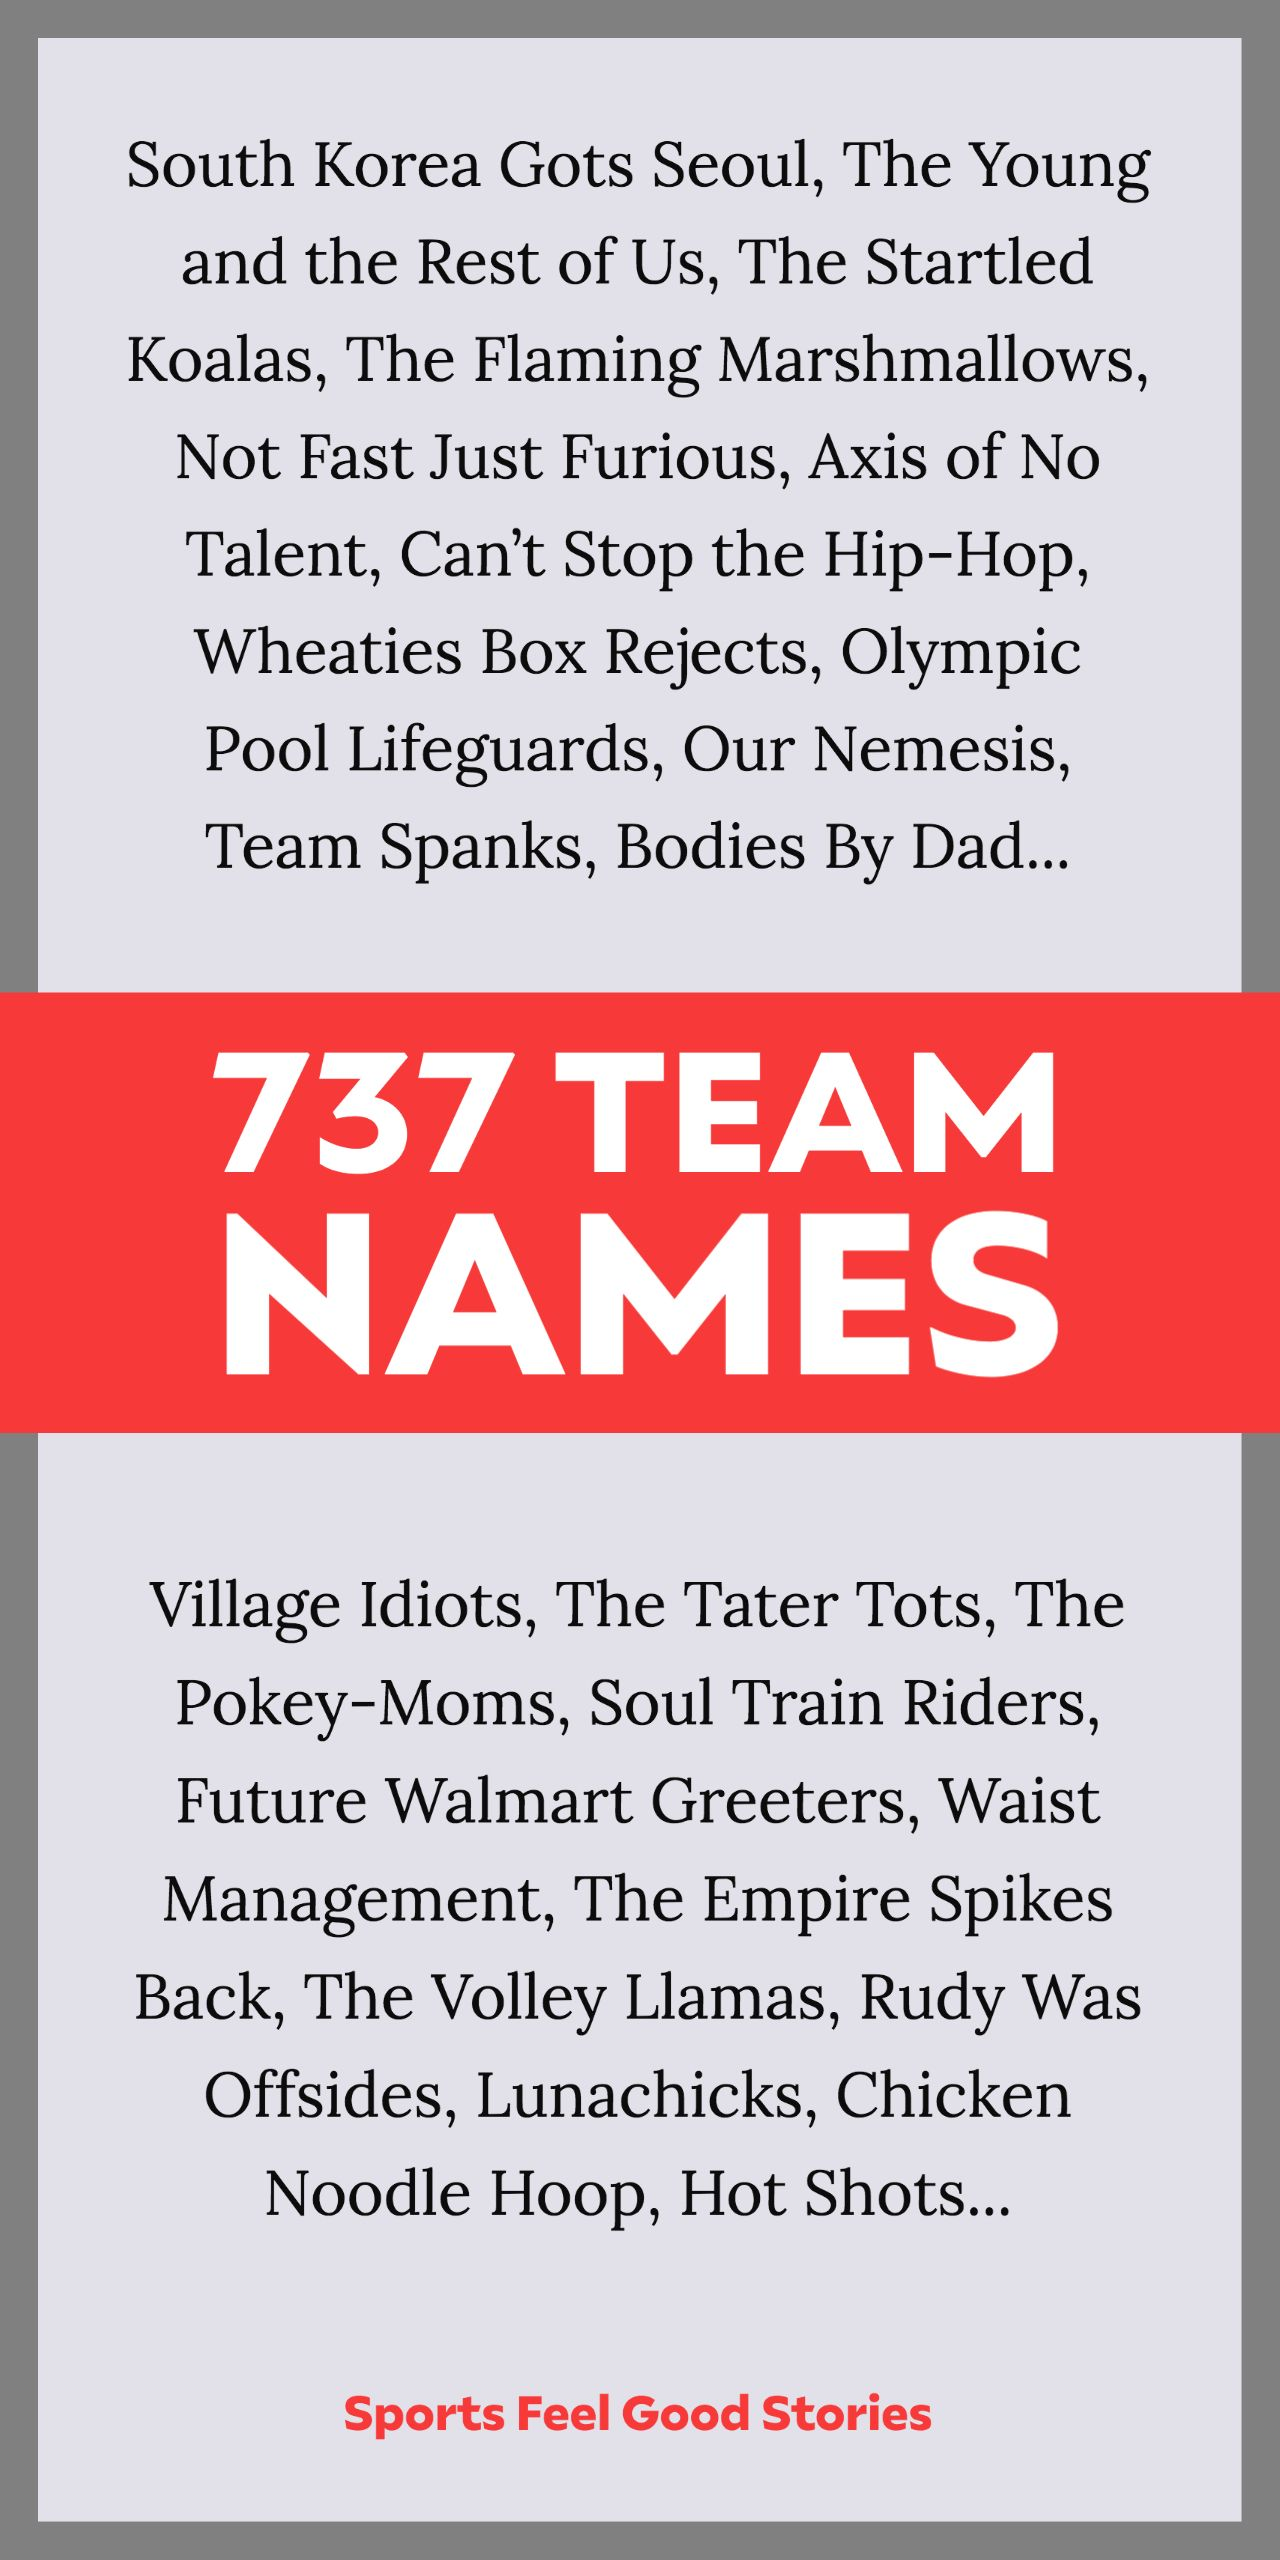 737 Best Team Names For Sports Work Play Sports Feel Good In 2020 Team Names Best Team Names Names